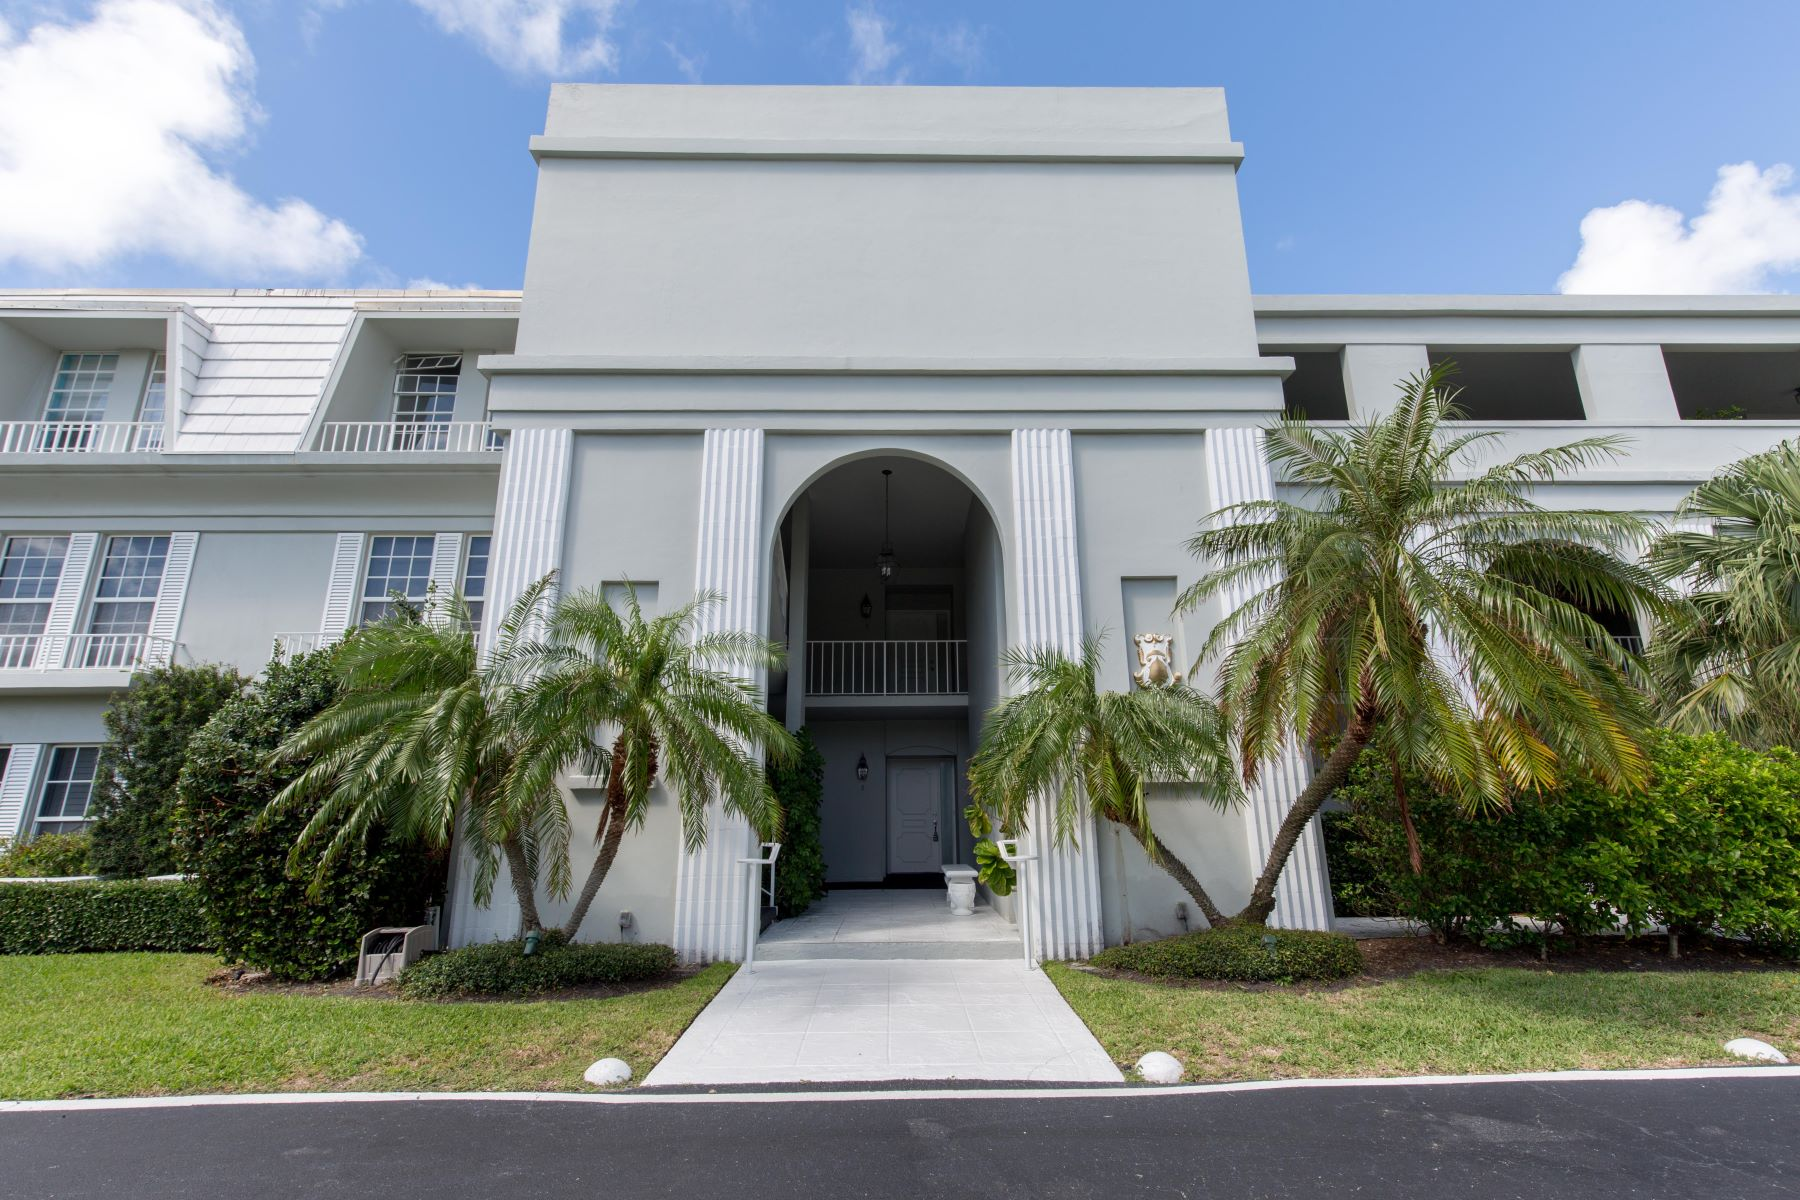 Additional photo for property listing at Ibis Isle Condo 2180 Ibis Isle Rd # 2 Palm Beach, Florida 33480 Amerika Birleşik Devletleri